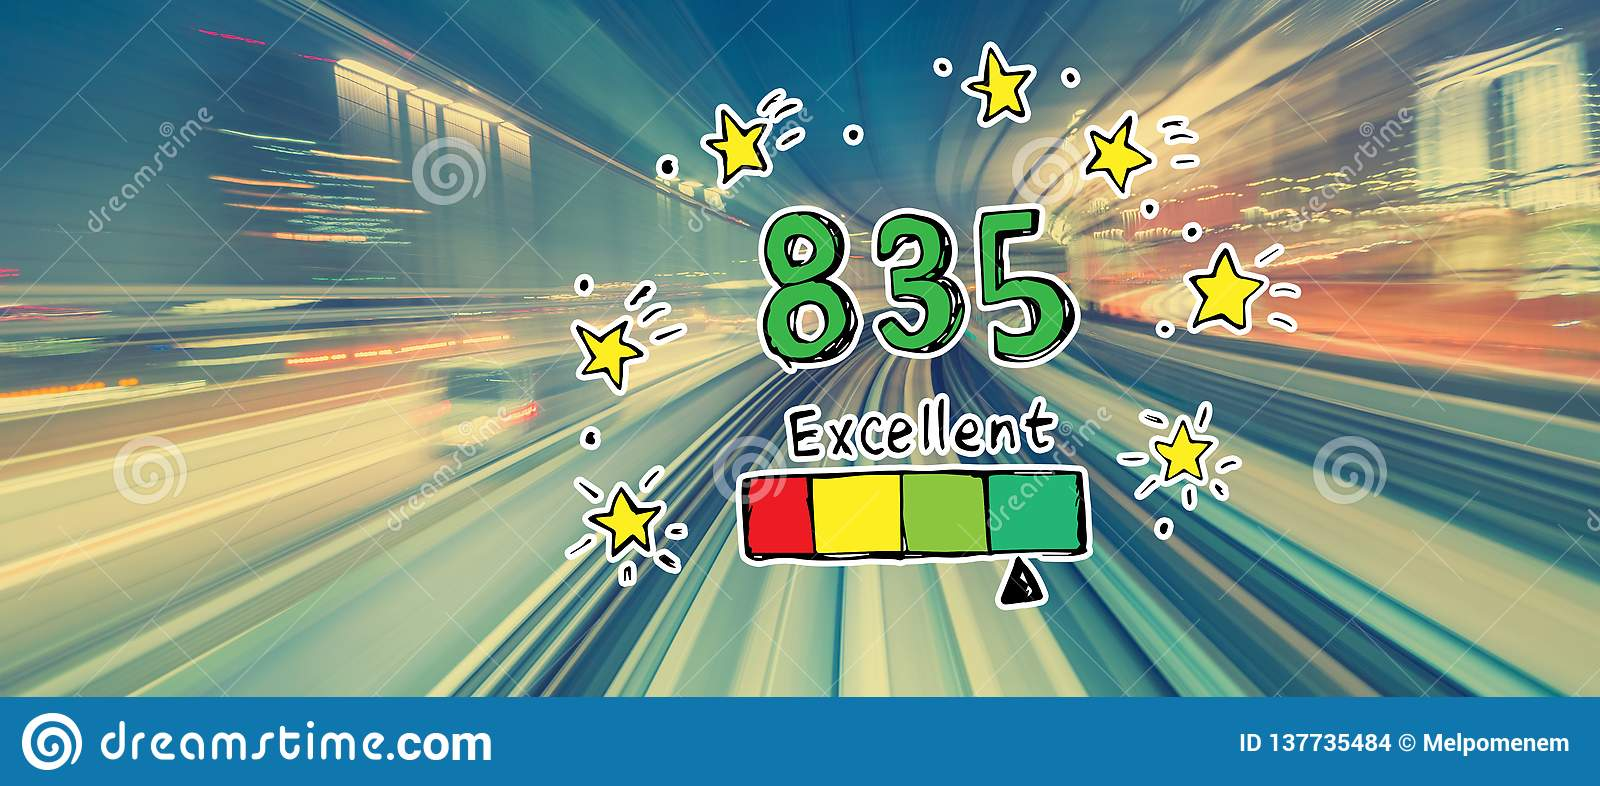 Excellent credit score theme with high speed motion blur